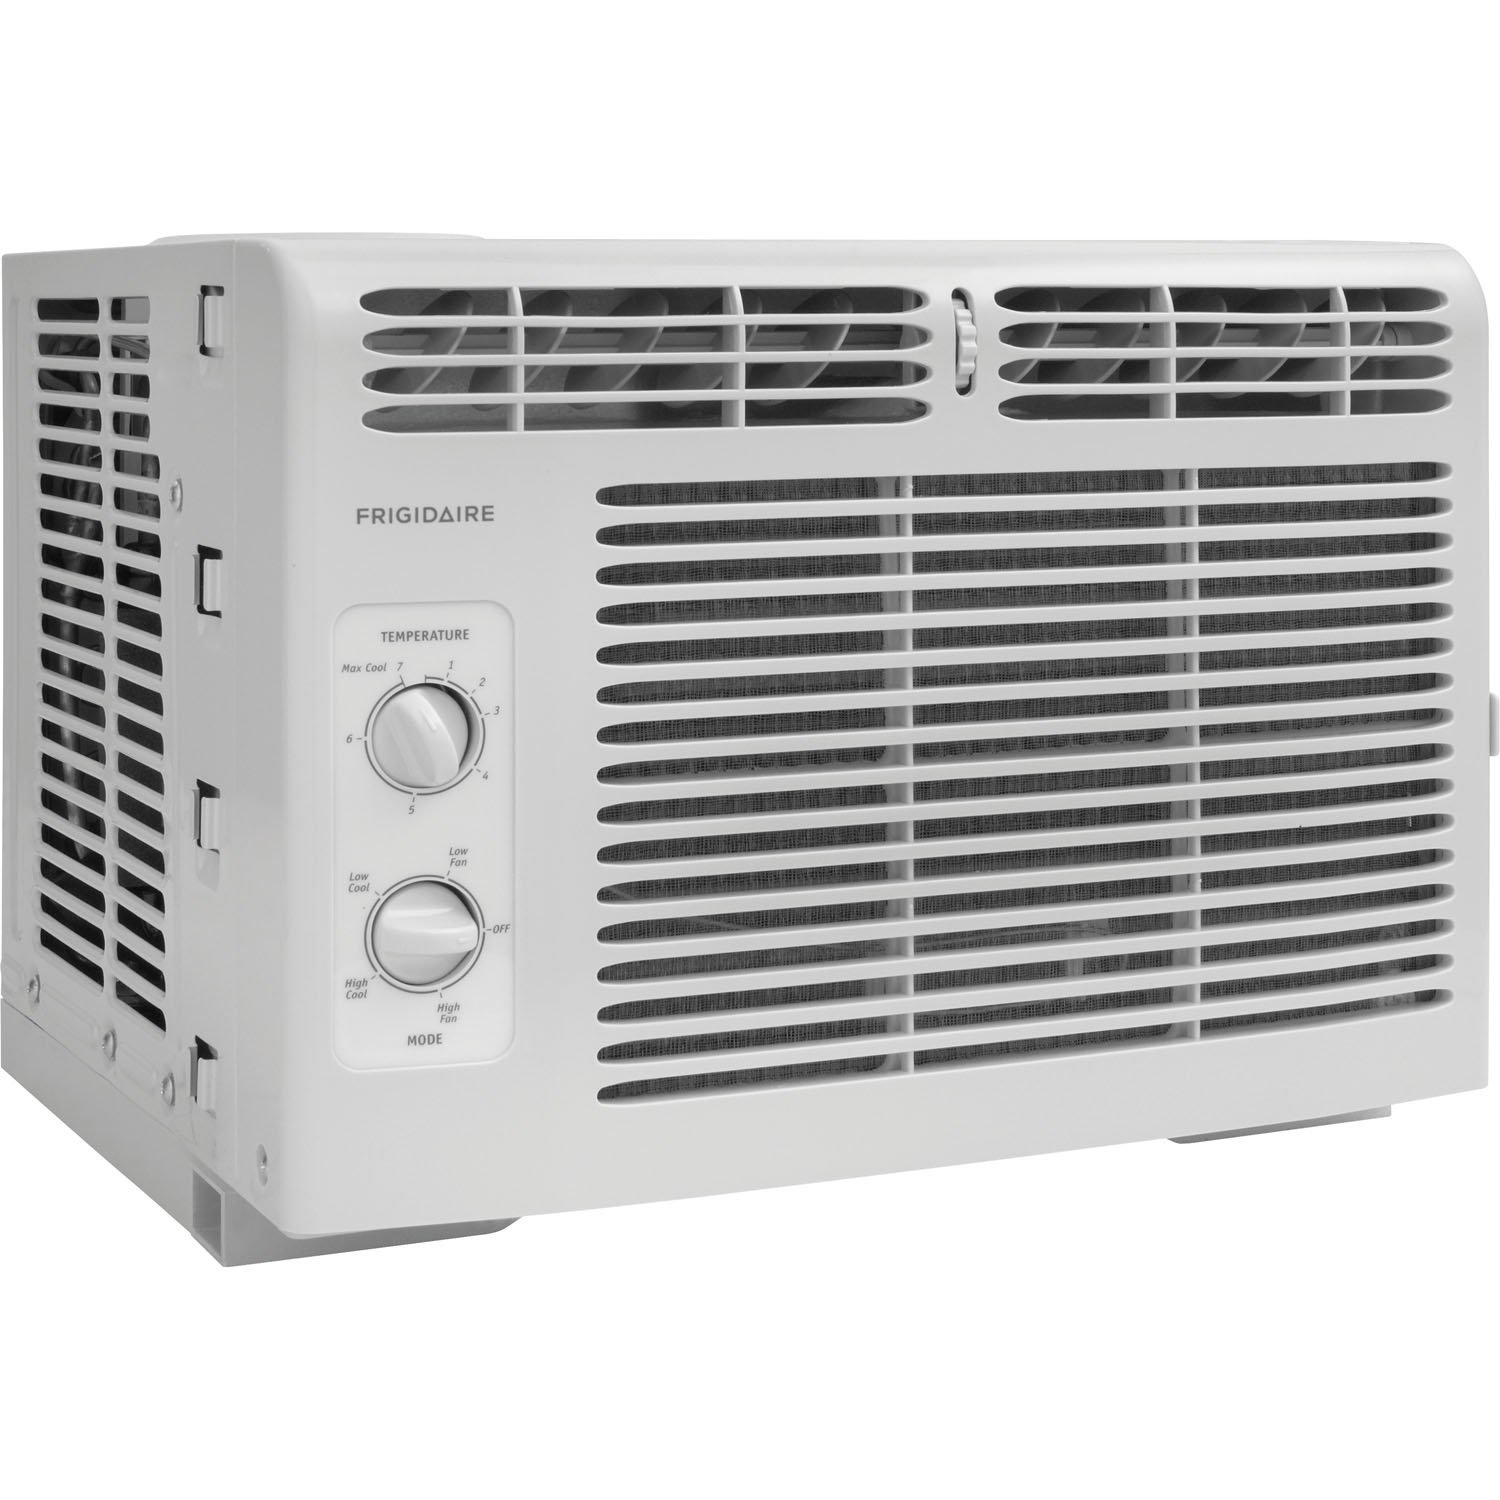 Portable Ac Unit For Bedroom